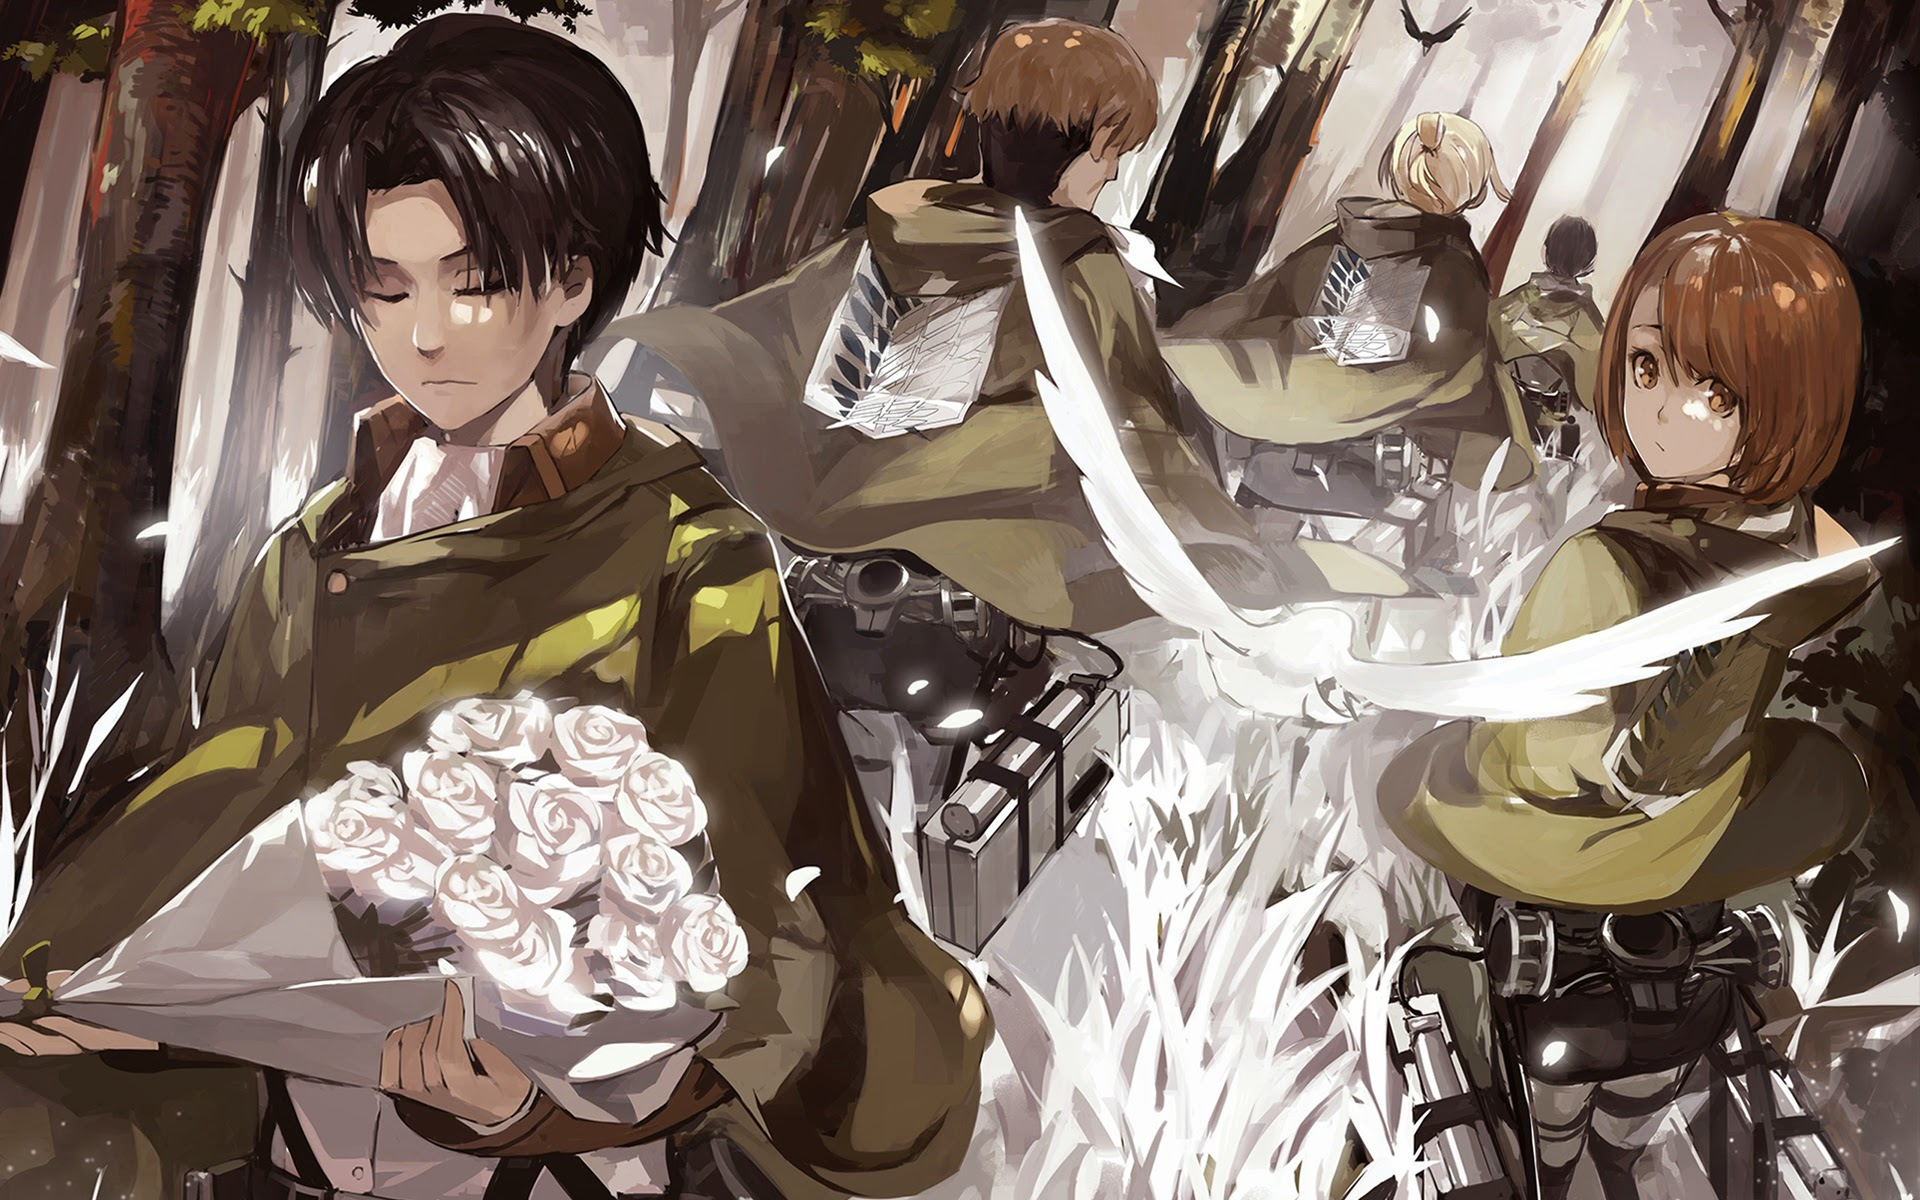 levi special squad anime attack on titan shingeki no kyojin hd 1920x1200